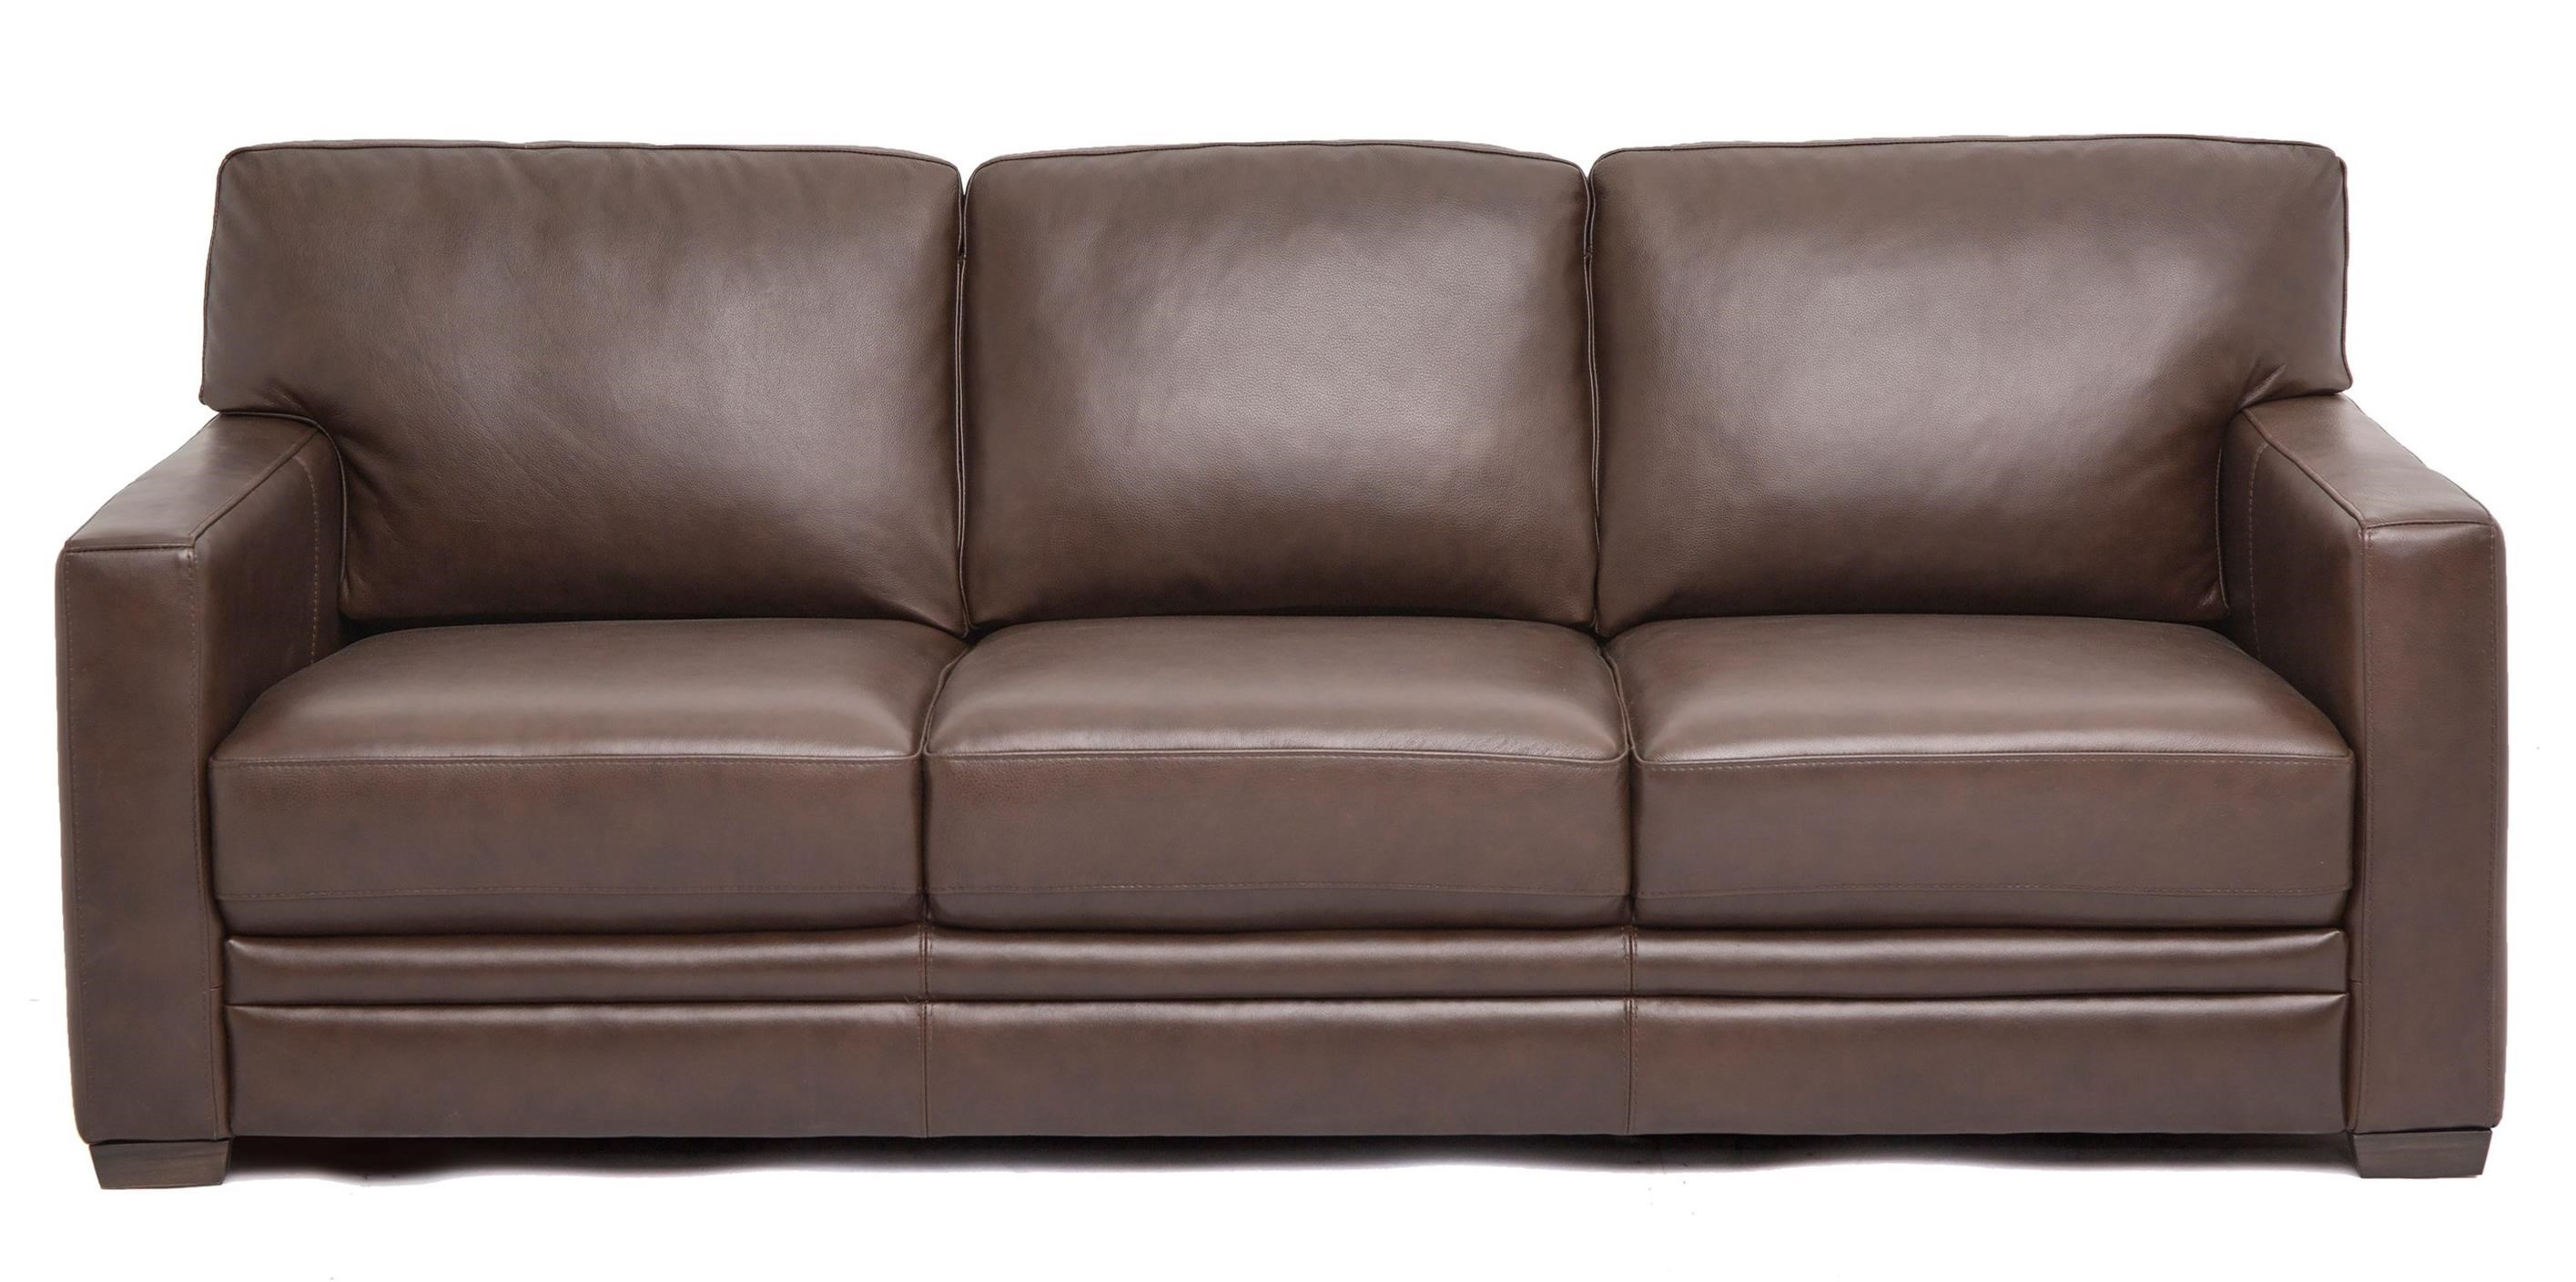 Htl 11674 Contemporary Sofa With Track Arms Wilson S